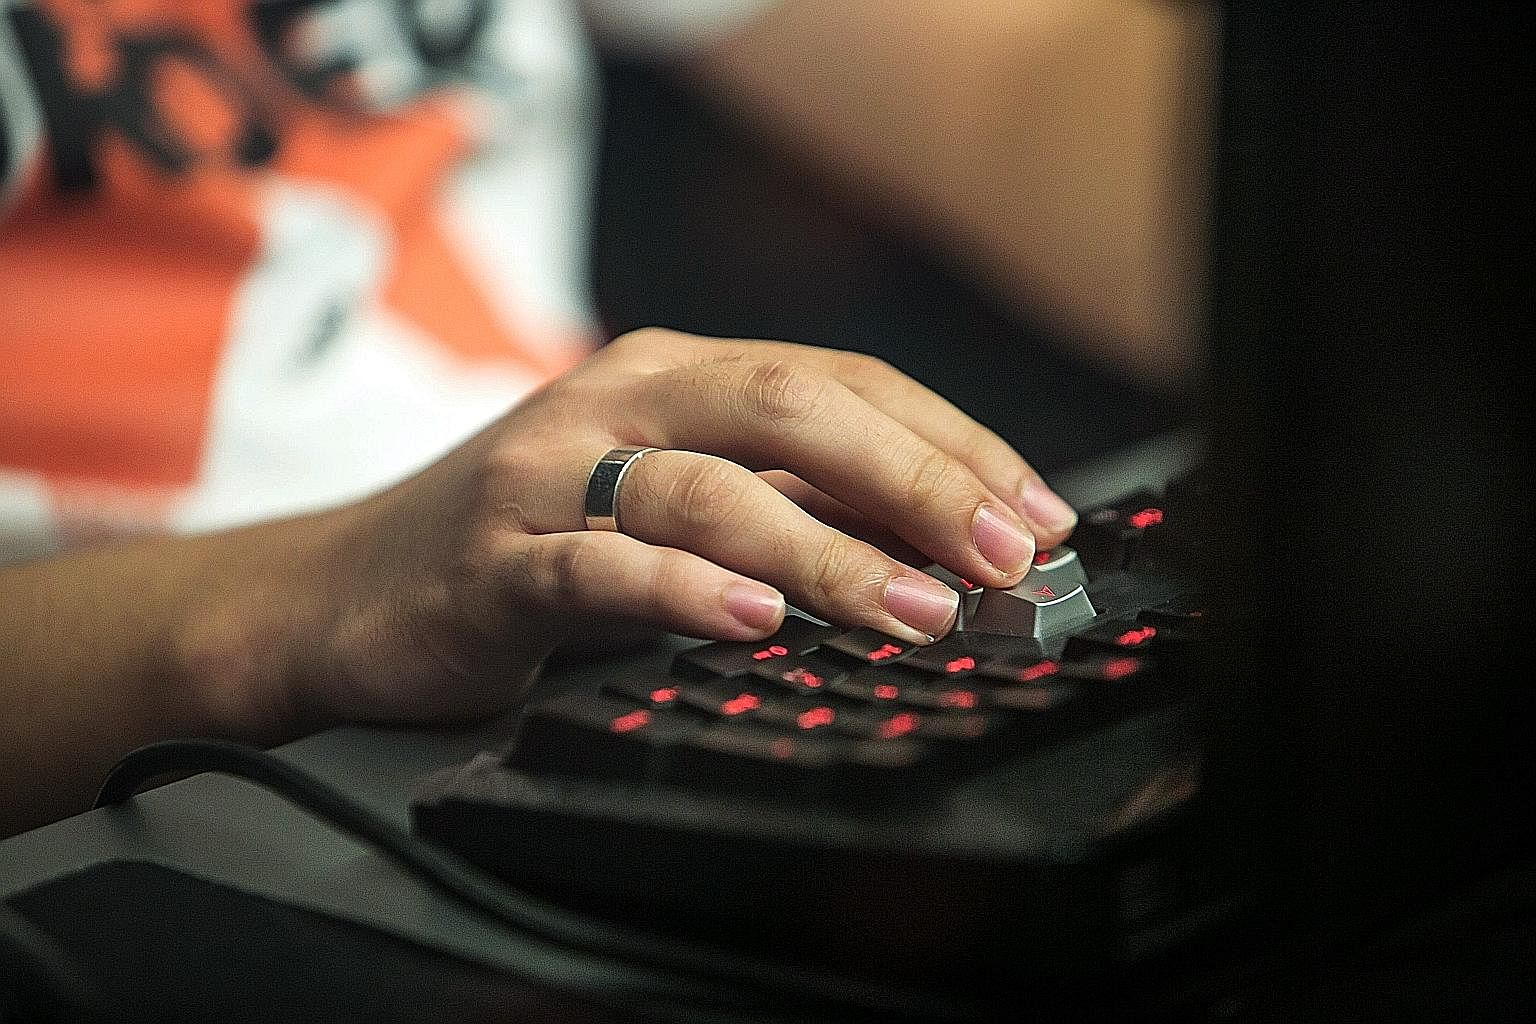 Researchers have discovered that the speed of hand-eye coordination required for professional eSports is something not observed in other sports - around four times faster than the average person.